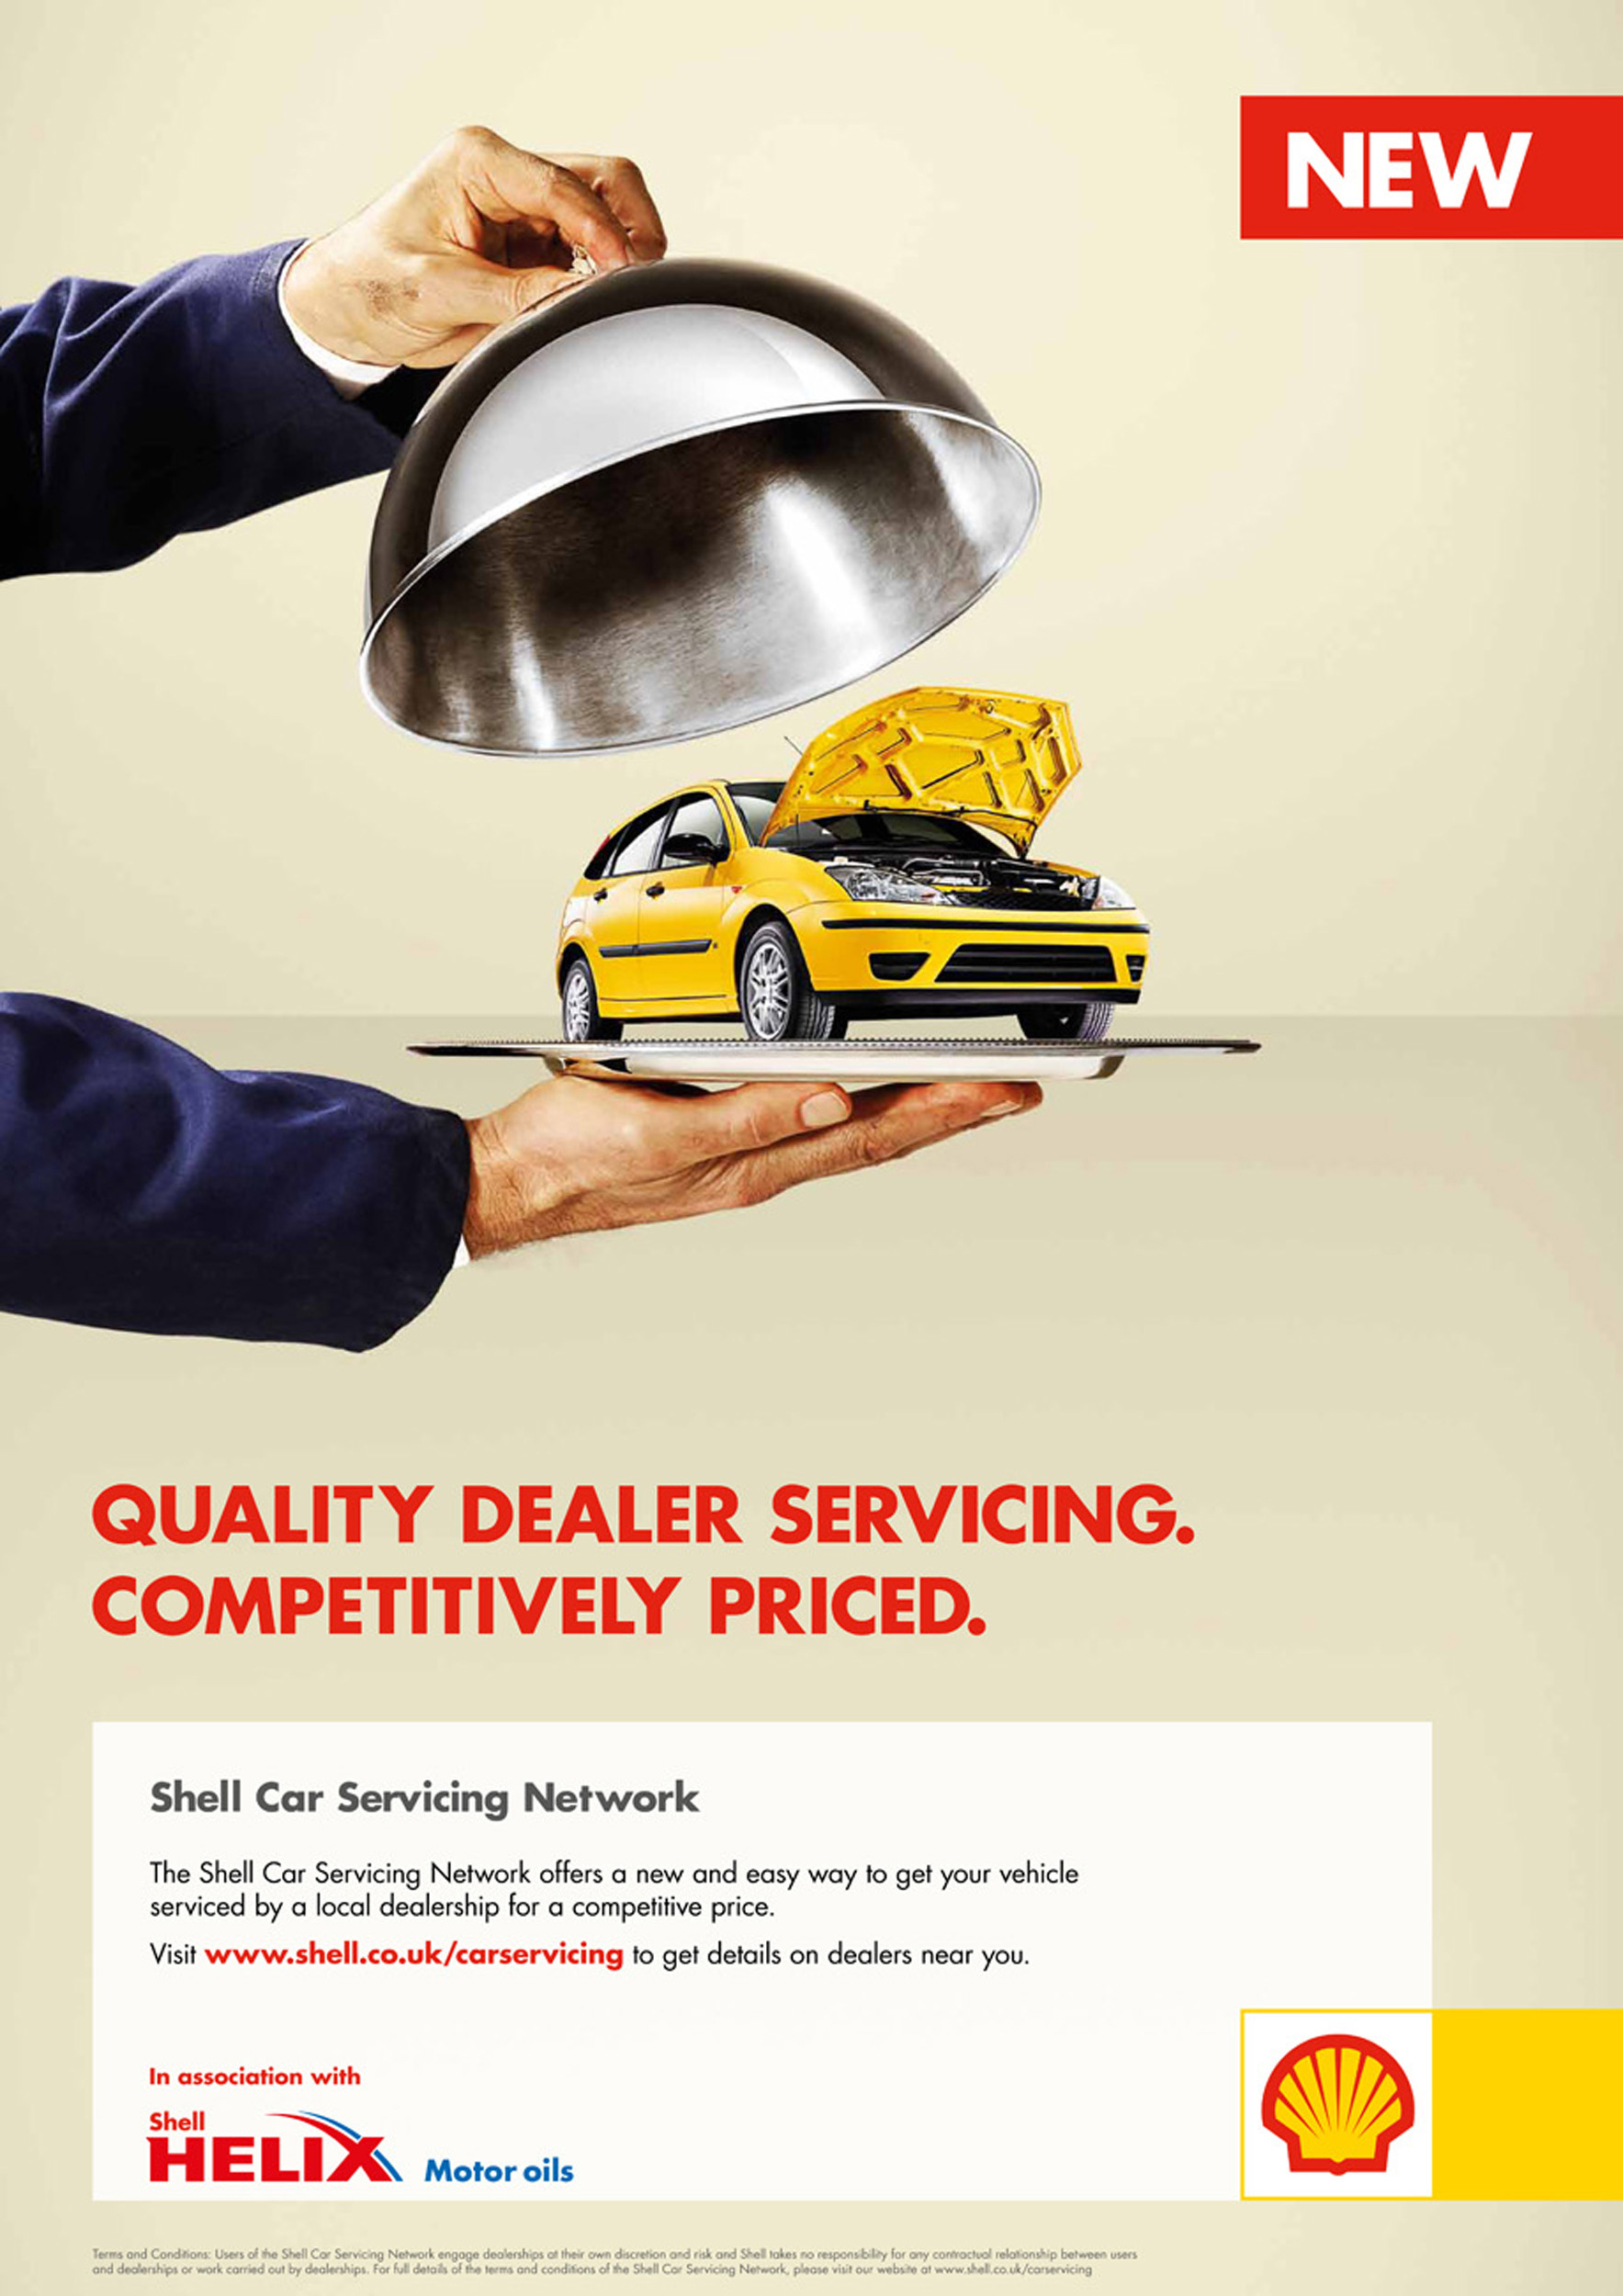 216466_SHELL_Shell_Services_Network_A2_Poster_Portrait